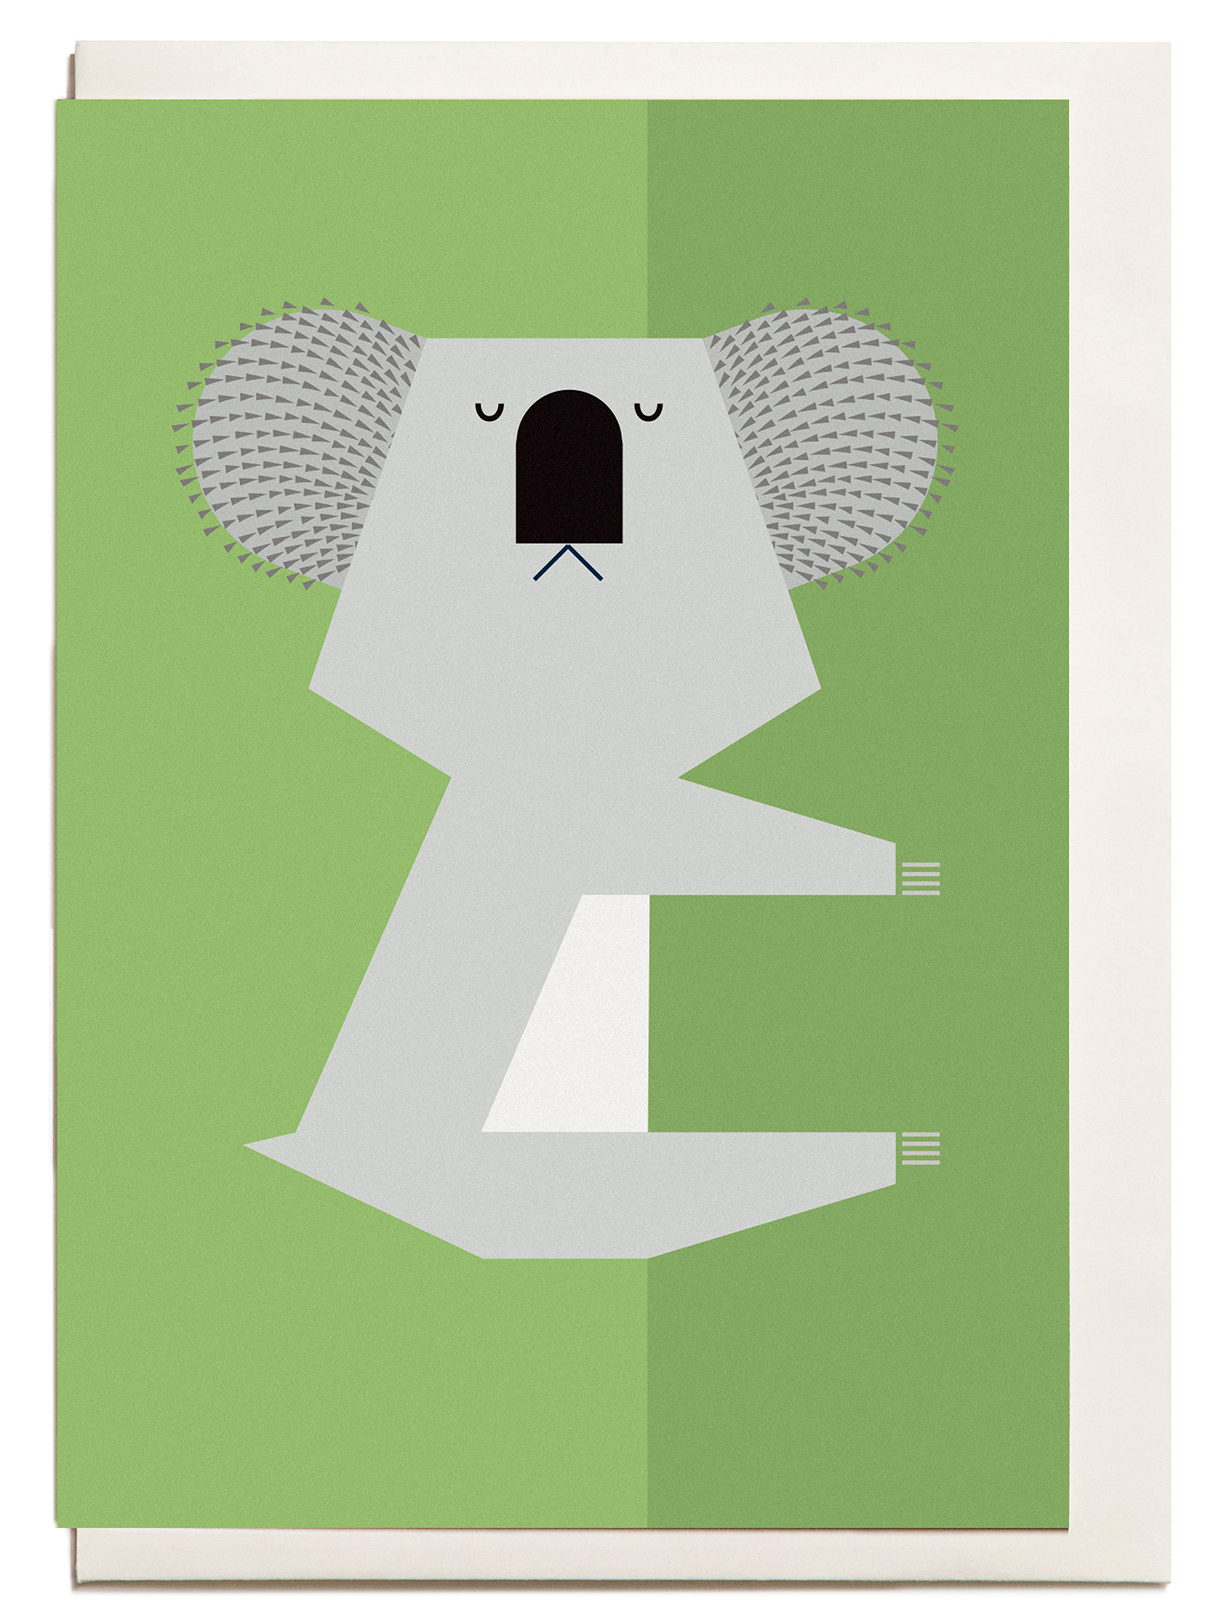 Above: A determined koala on an I Ended Up Here card.